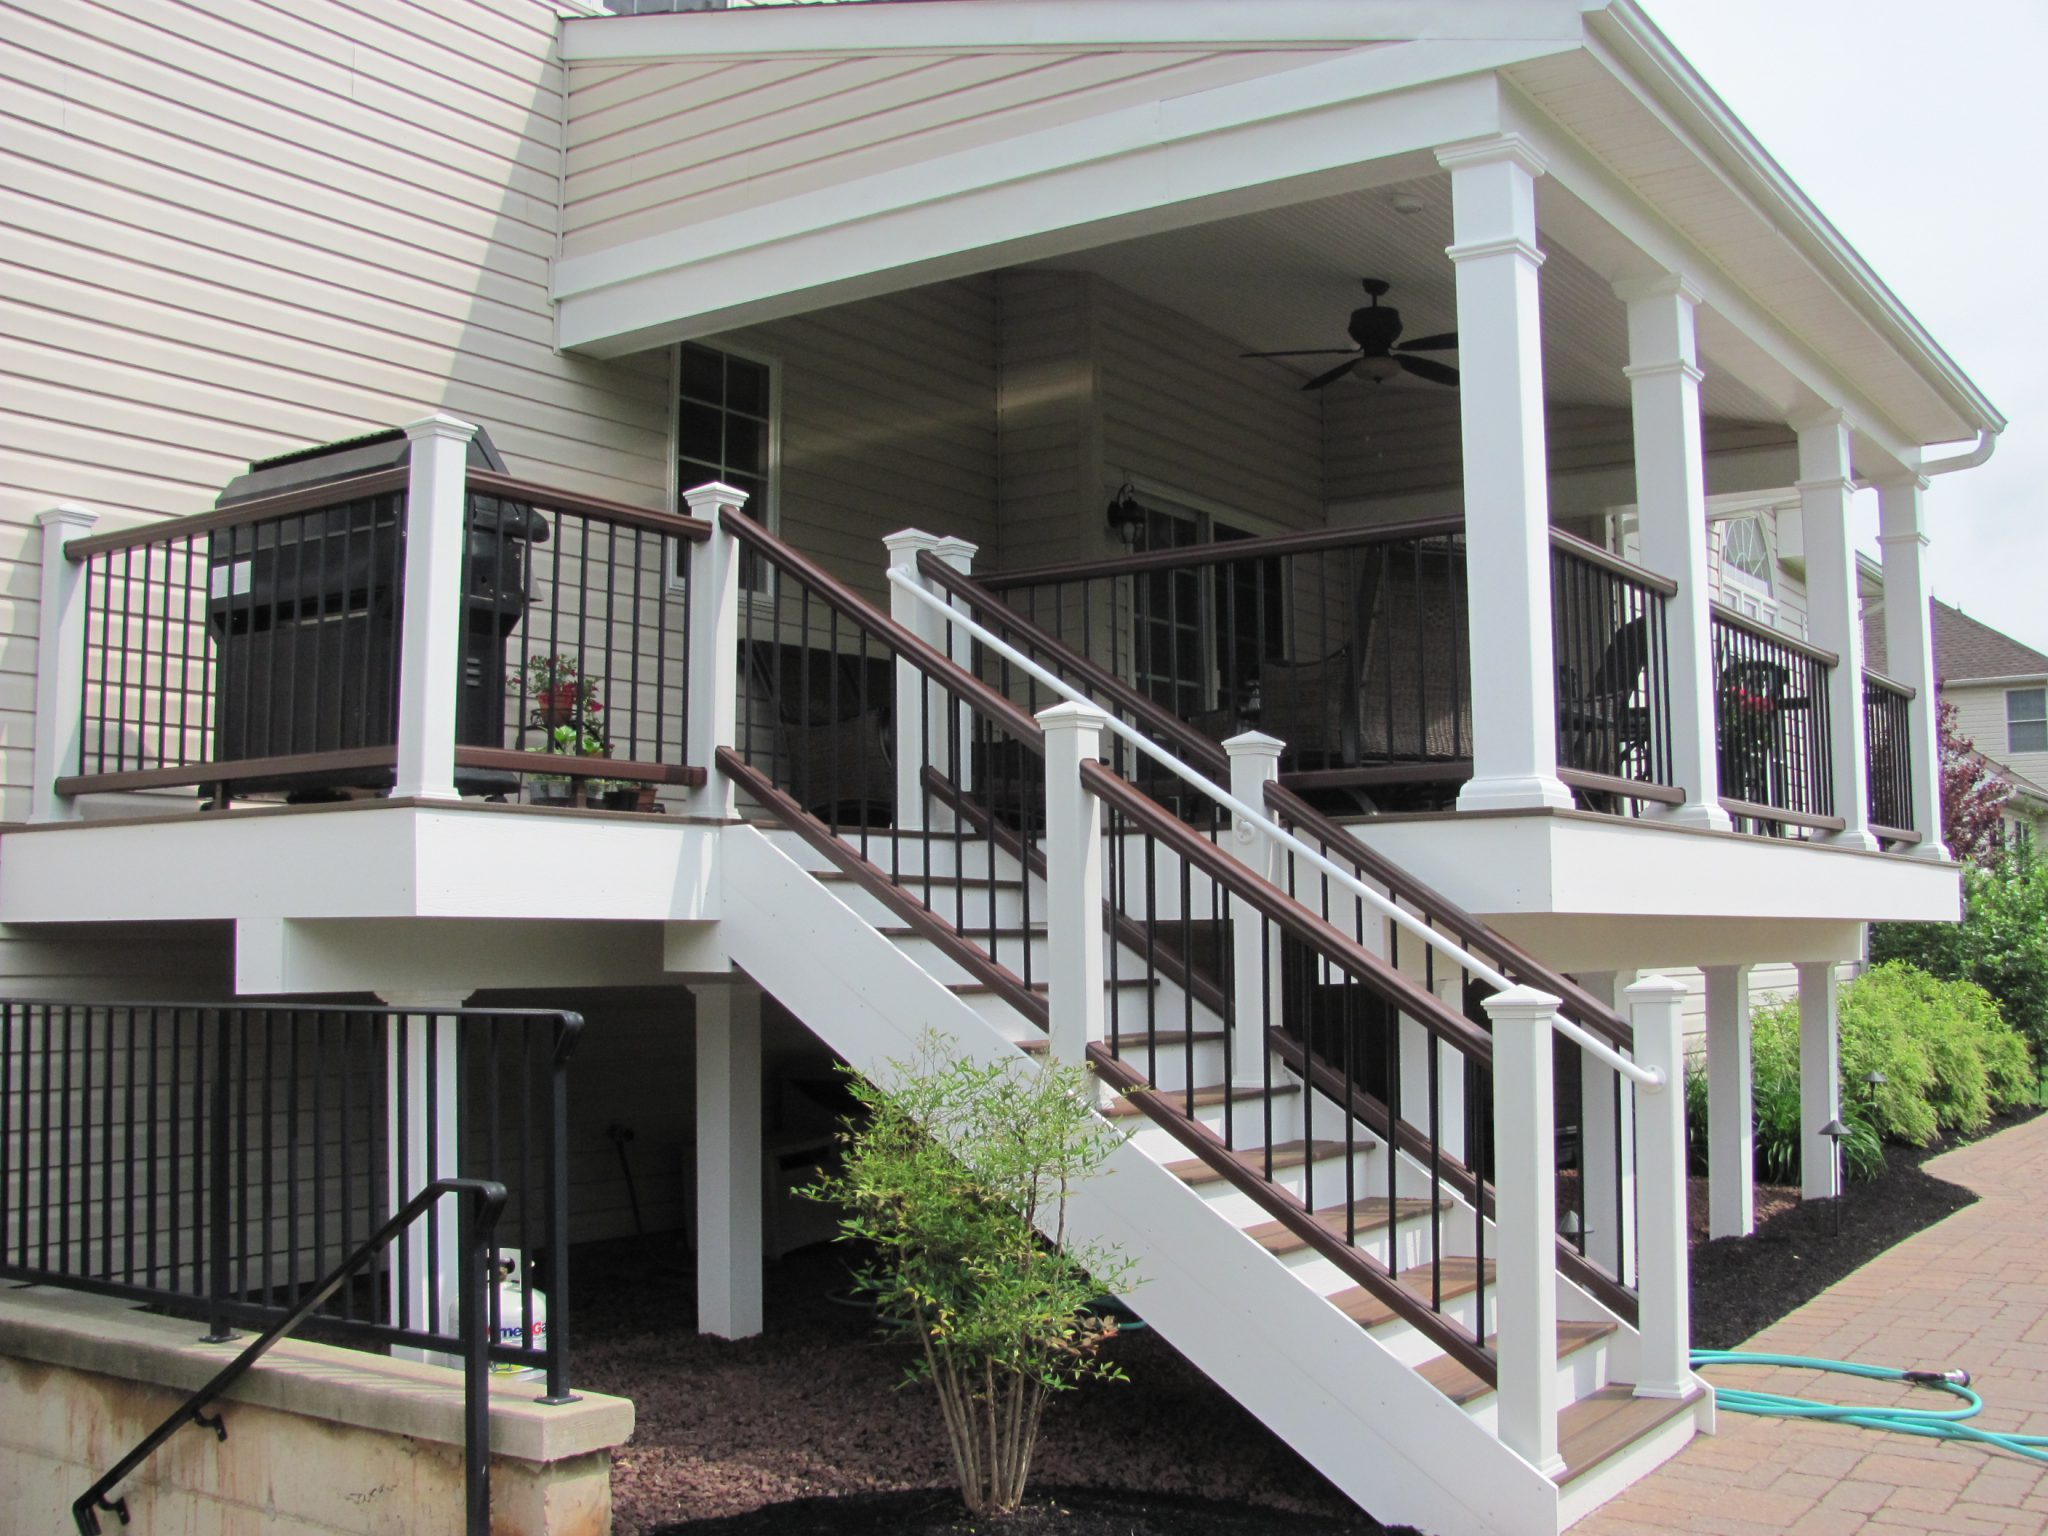 Trex deck railings for style durability safety for Another word for balcony